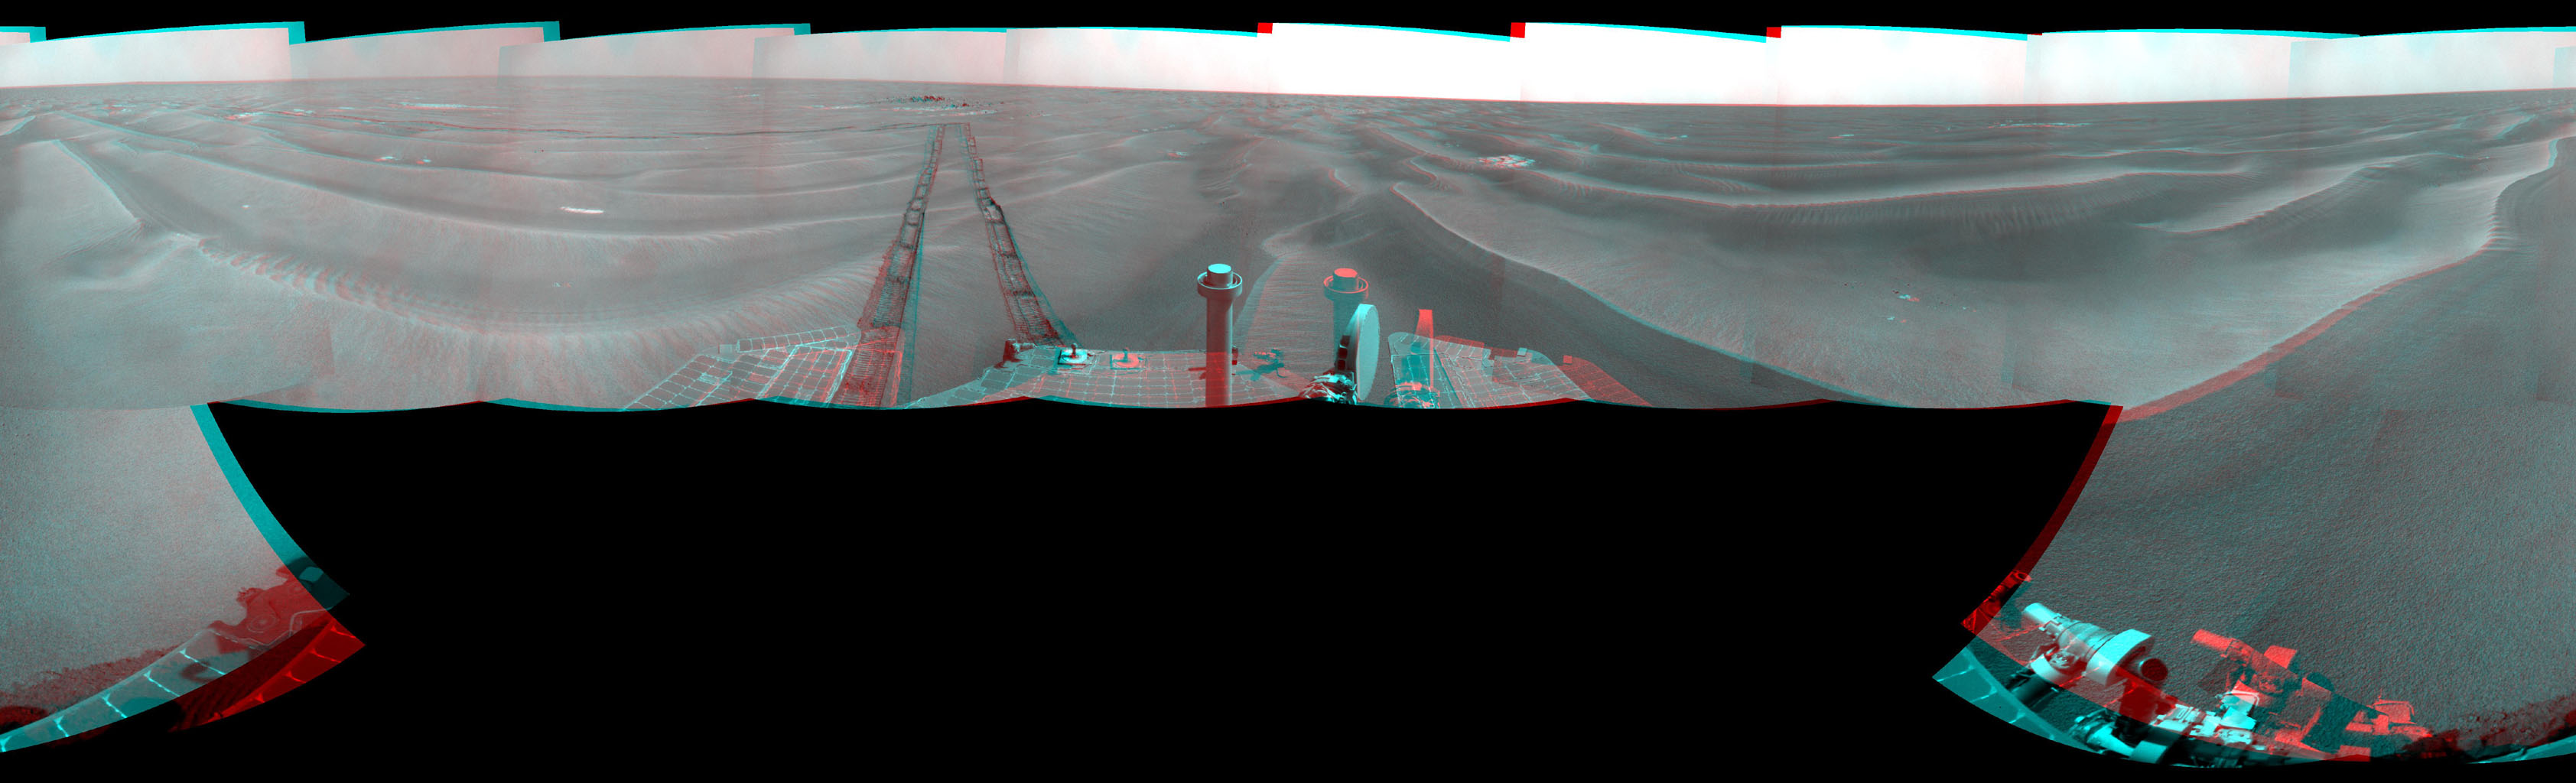 NASA's Mars Exploration Rover Opportunity used its navigation camera to take the images combined into this stereo 180-degree view on March 7-9, 2009. 3D glasses are necessary to view this image.